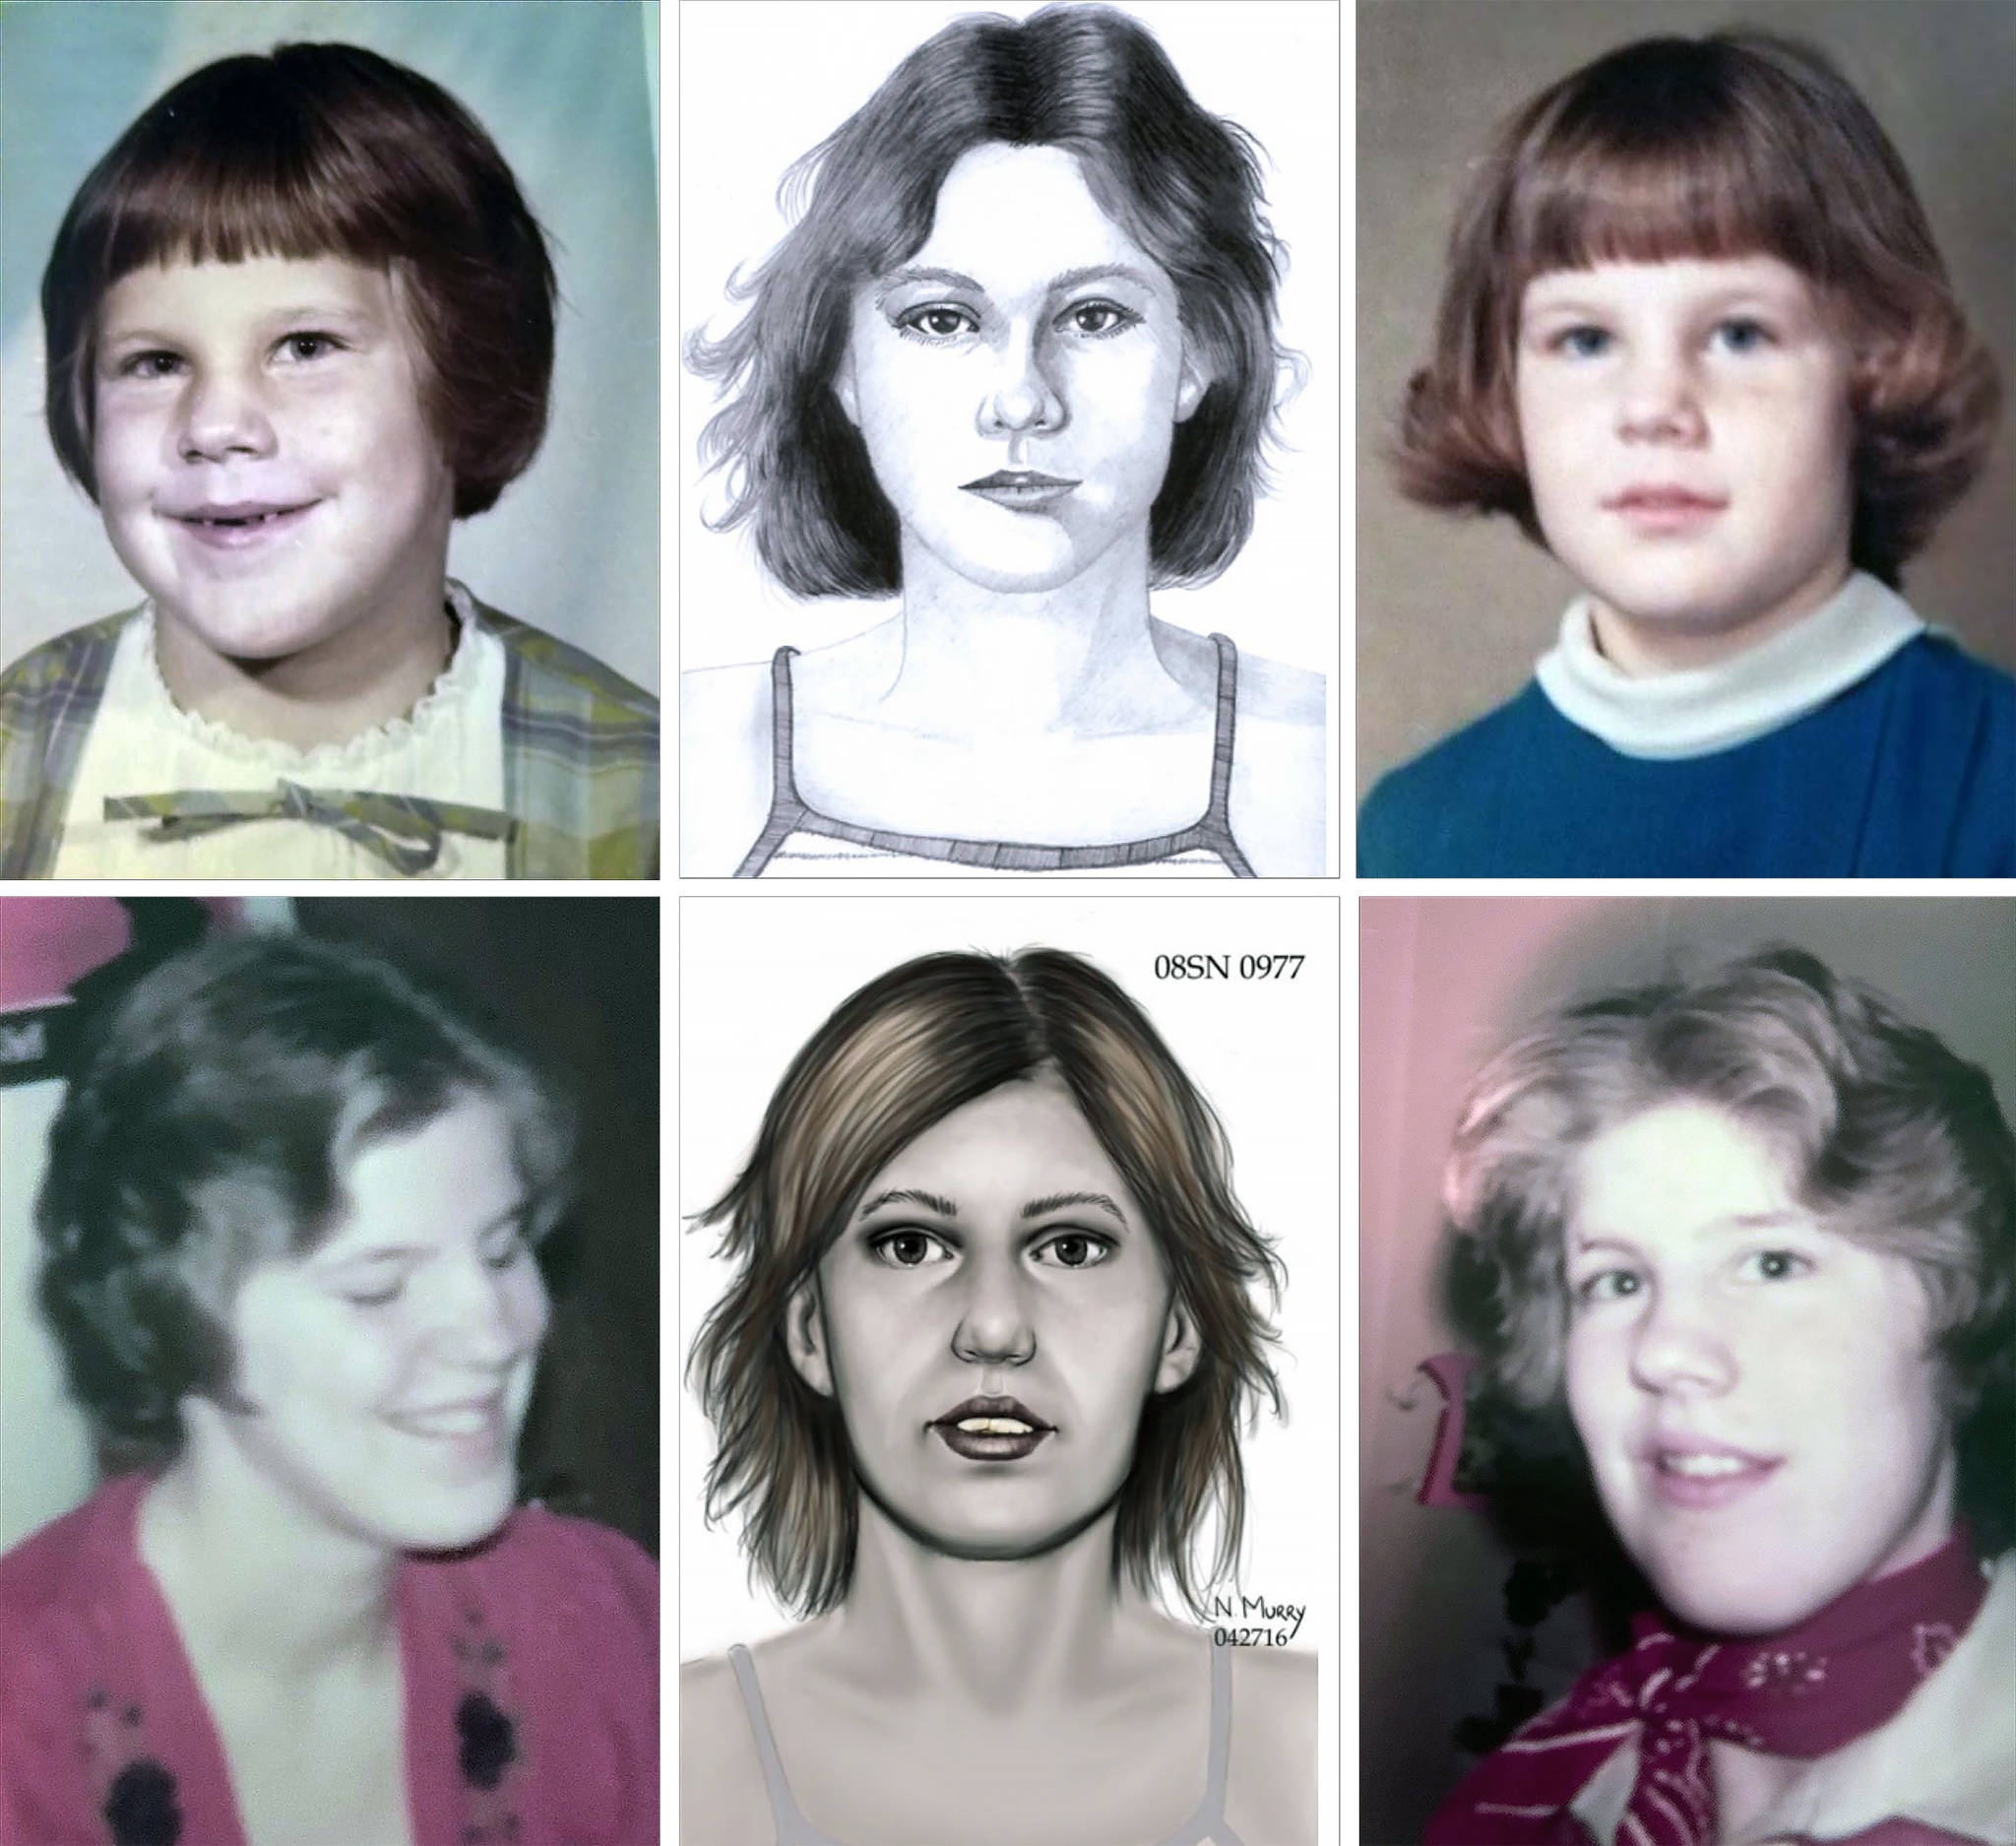 Forensic artists tried twice in the past 12 years to recreate the face of a young woman murdered south of Everett in 1977. But the case remained cold. The Snohomish County Sheriff's Office announced Friday that her name and history had been rediscovered with the help of cutting-edge DNA technology and genealogy research. She was Lisa Roberts, 17, of Roseburg, Oregon.